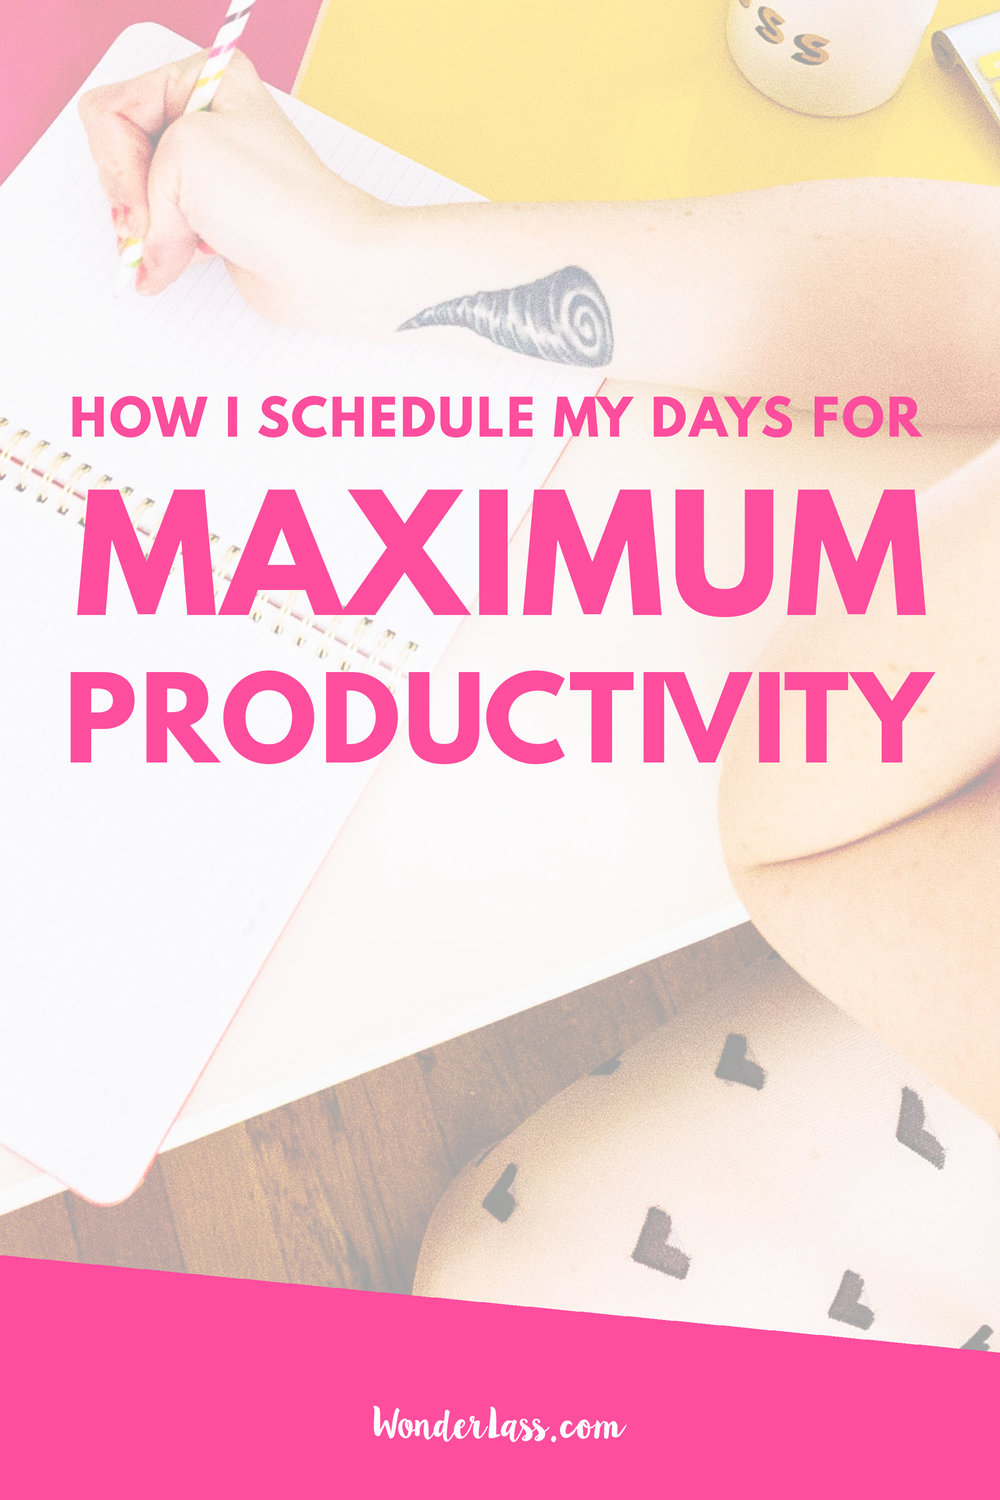 How I Schedule My Days for Maximum Productivity | If you're struggling to get everything done with limited time, then this blog post is for you! Maximize your impact by learning how to schedule your days for maximum productivity | Wonderlass